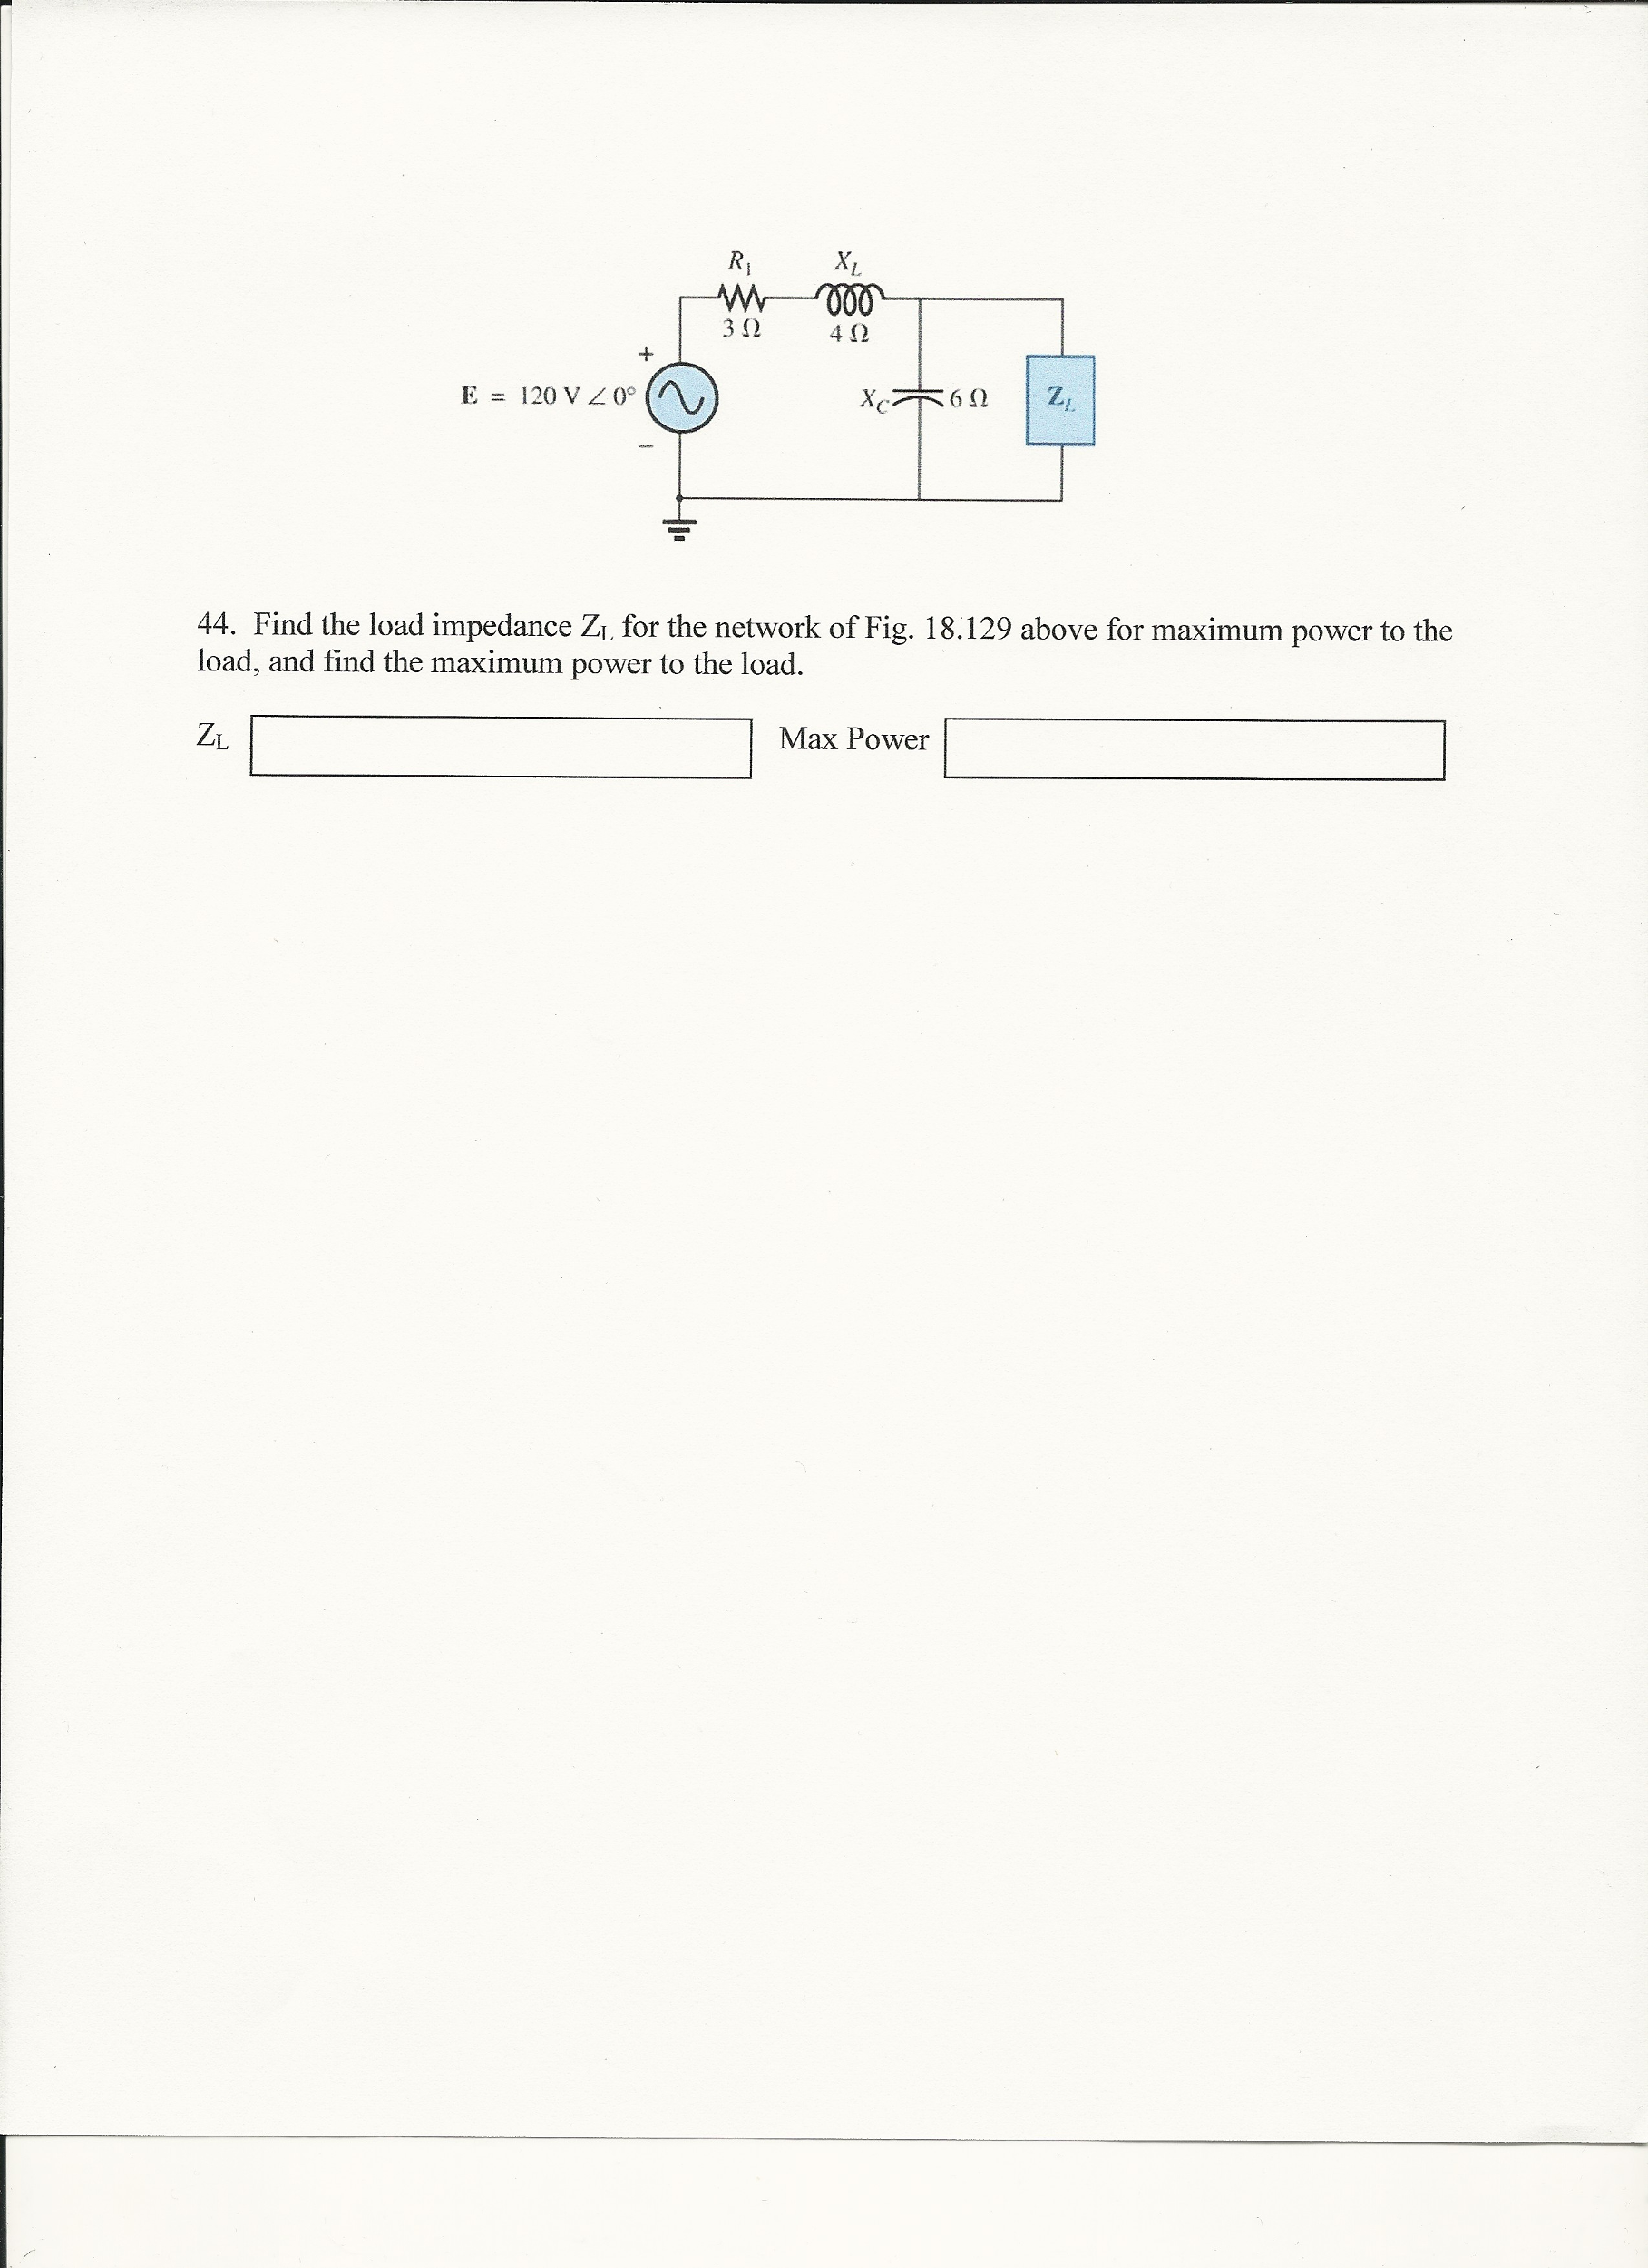 Find the load impedance Z1, for the network of Fig